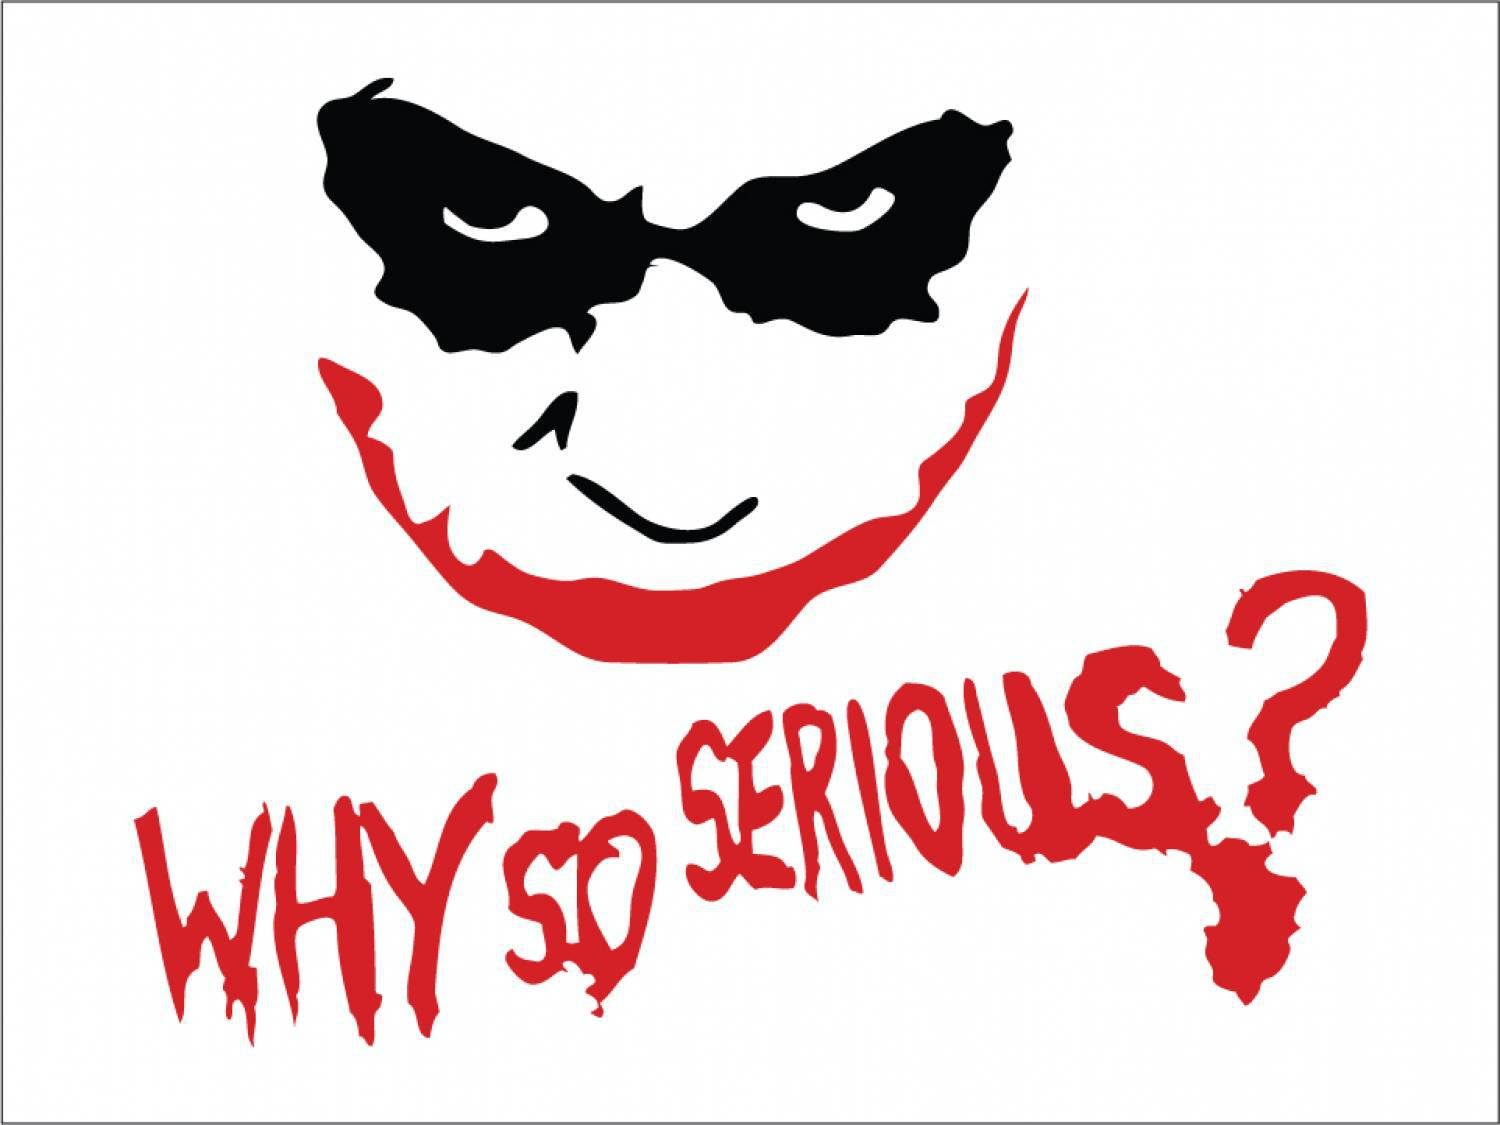 Why So Serious Computer Wallpaper